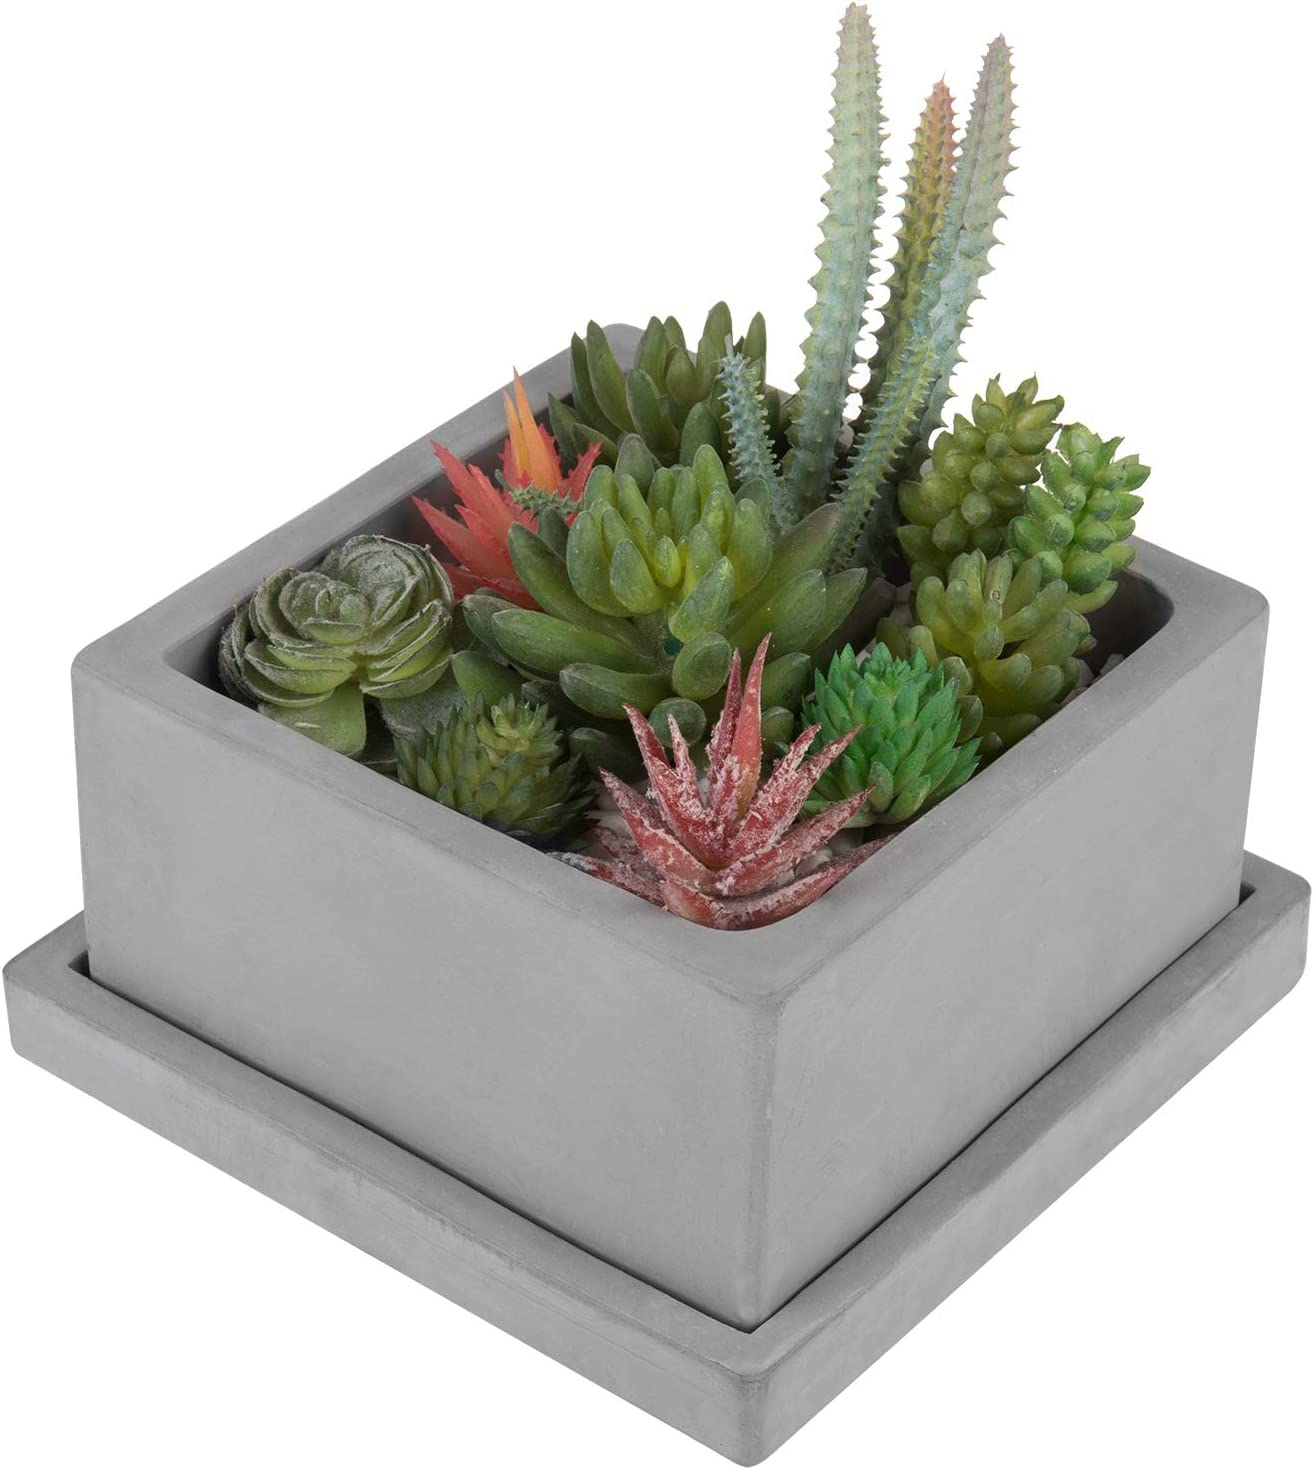 MyGift Selling and selling Square Over item handling Cement Succulent Planter Removable Pot with Saucer